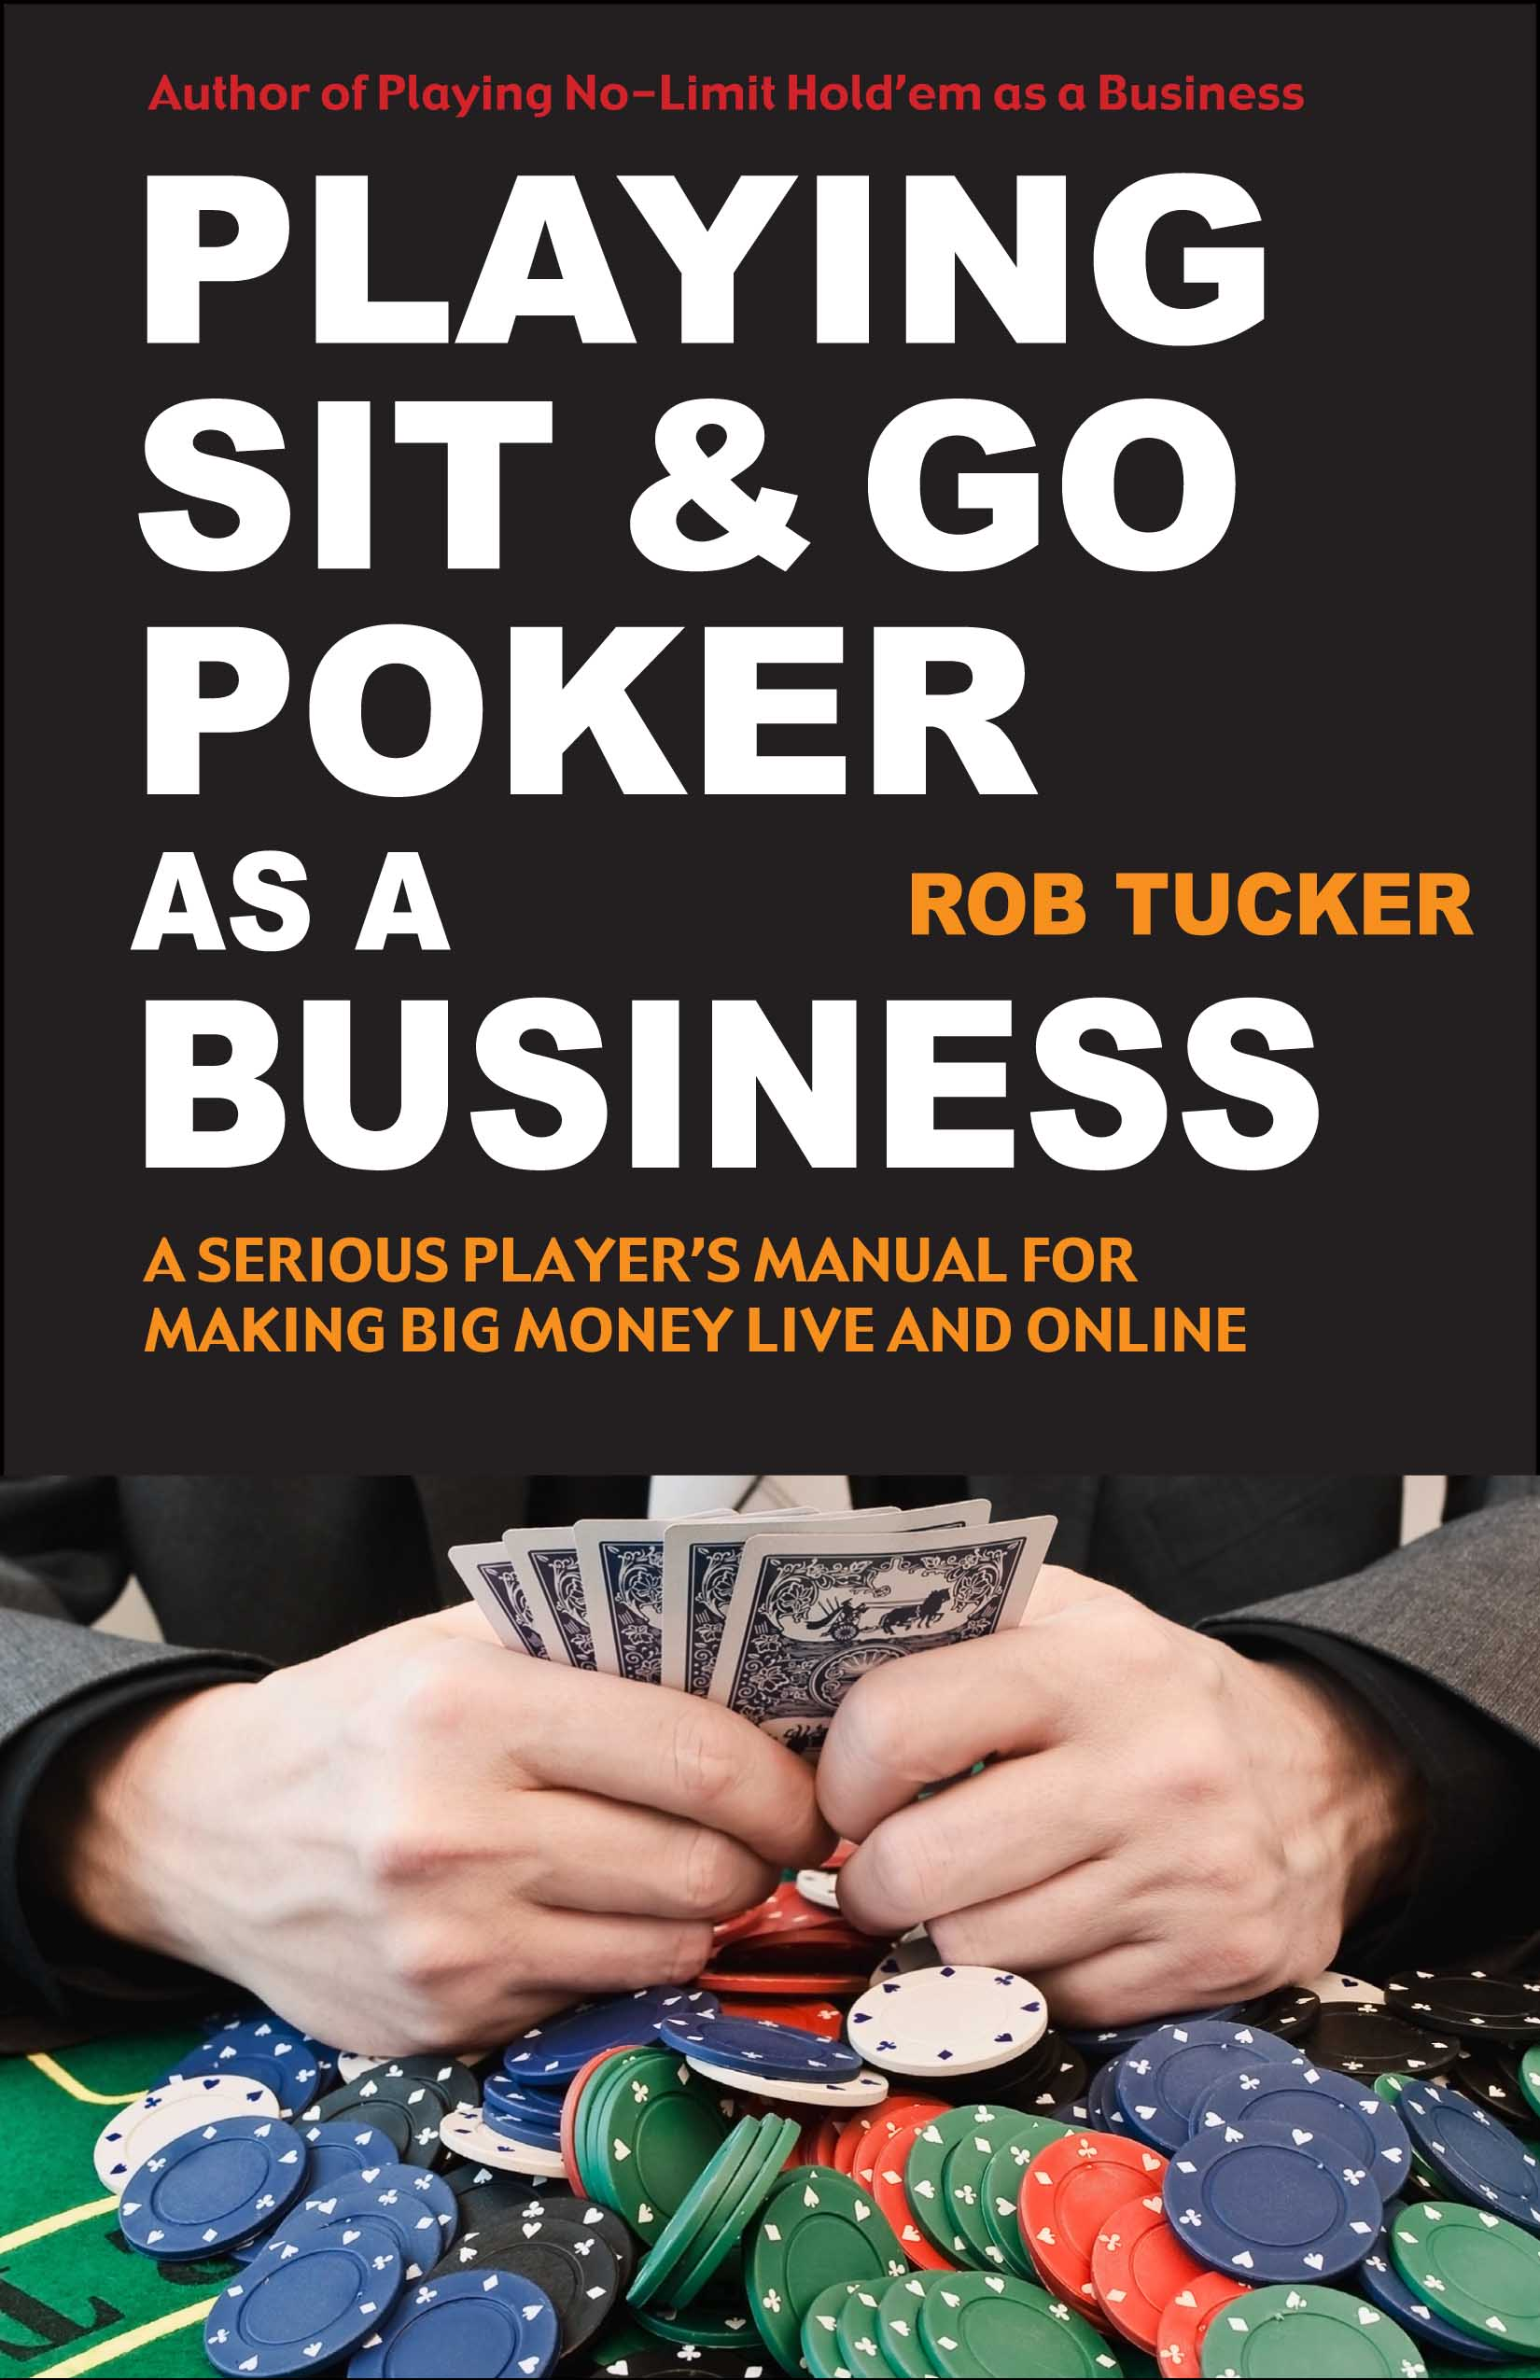 How to be a poker player book 3 card poker 6 card bonus las vegas